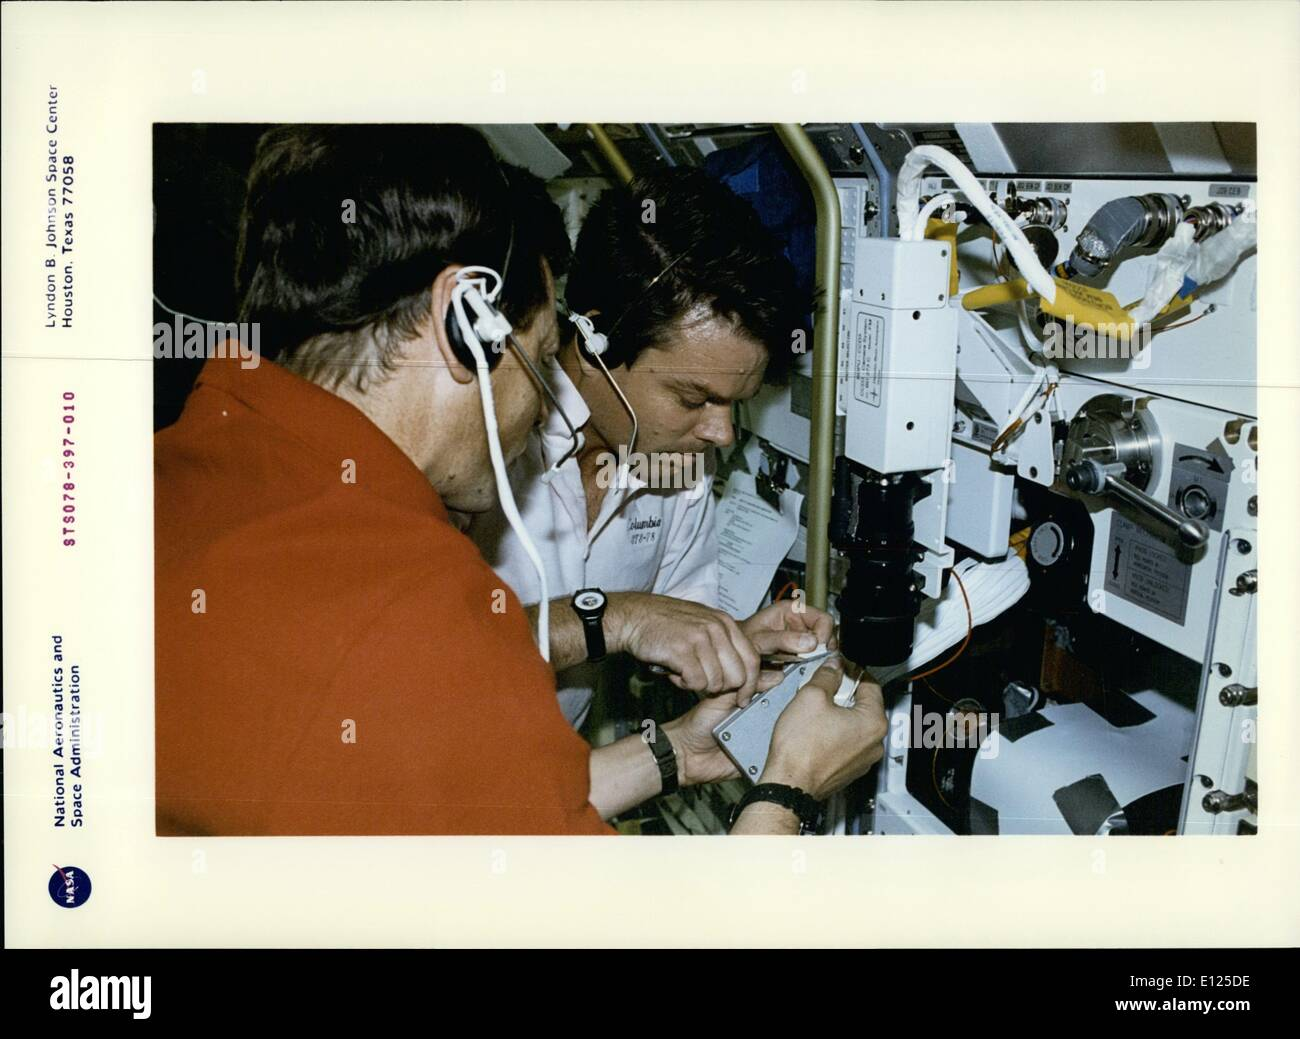 Jun. 06, 1996 - Johnson Space Center, Houston, Texas: STS-78 On Board View: Payload specialist Jean-Jacques Favier, reepresentating the French Space Agency (CNES), and astronaut Kevin R. Kregel, pilot, perform a succesful Inflight Maintence (IFM) on the Bubble Drop Particke Unit (BDPU). The lFM technique was performed initially on the ground at the Marshall Space Flight Center (MSFC) by altemate payload specialist pedro Duque o the European Space Agency (ESA), with the procedure being recorded on video and uplinked to the crew of the Space Shuttle Columbia to aid in the repair. - Stock Image